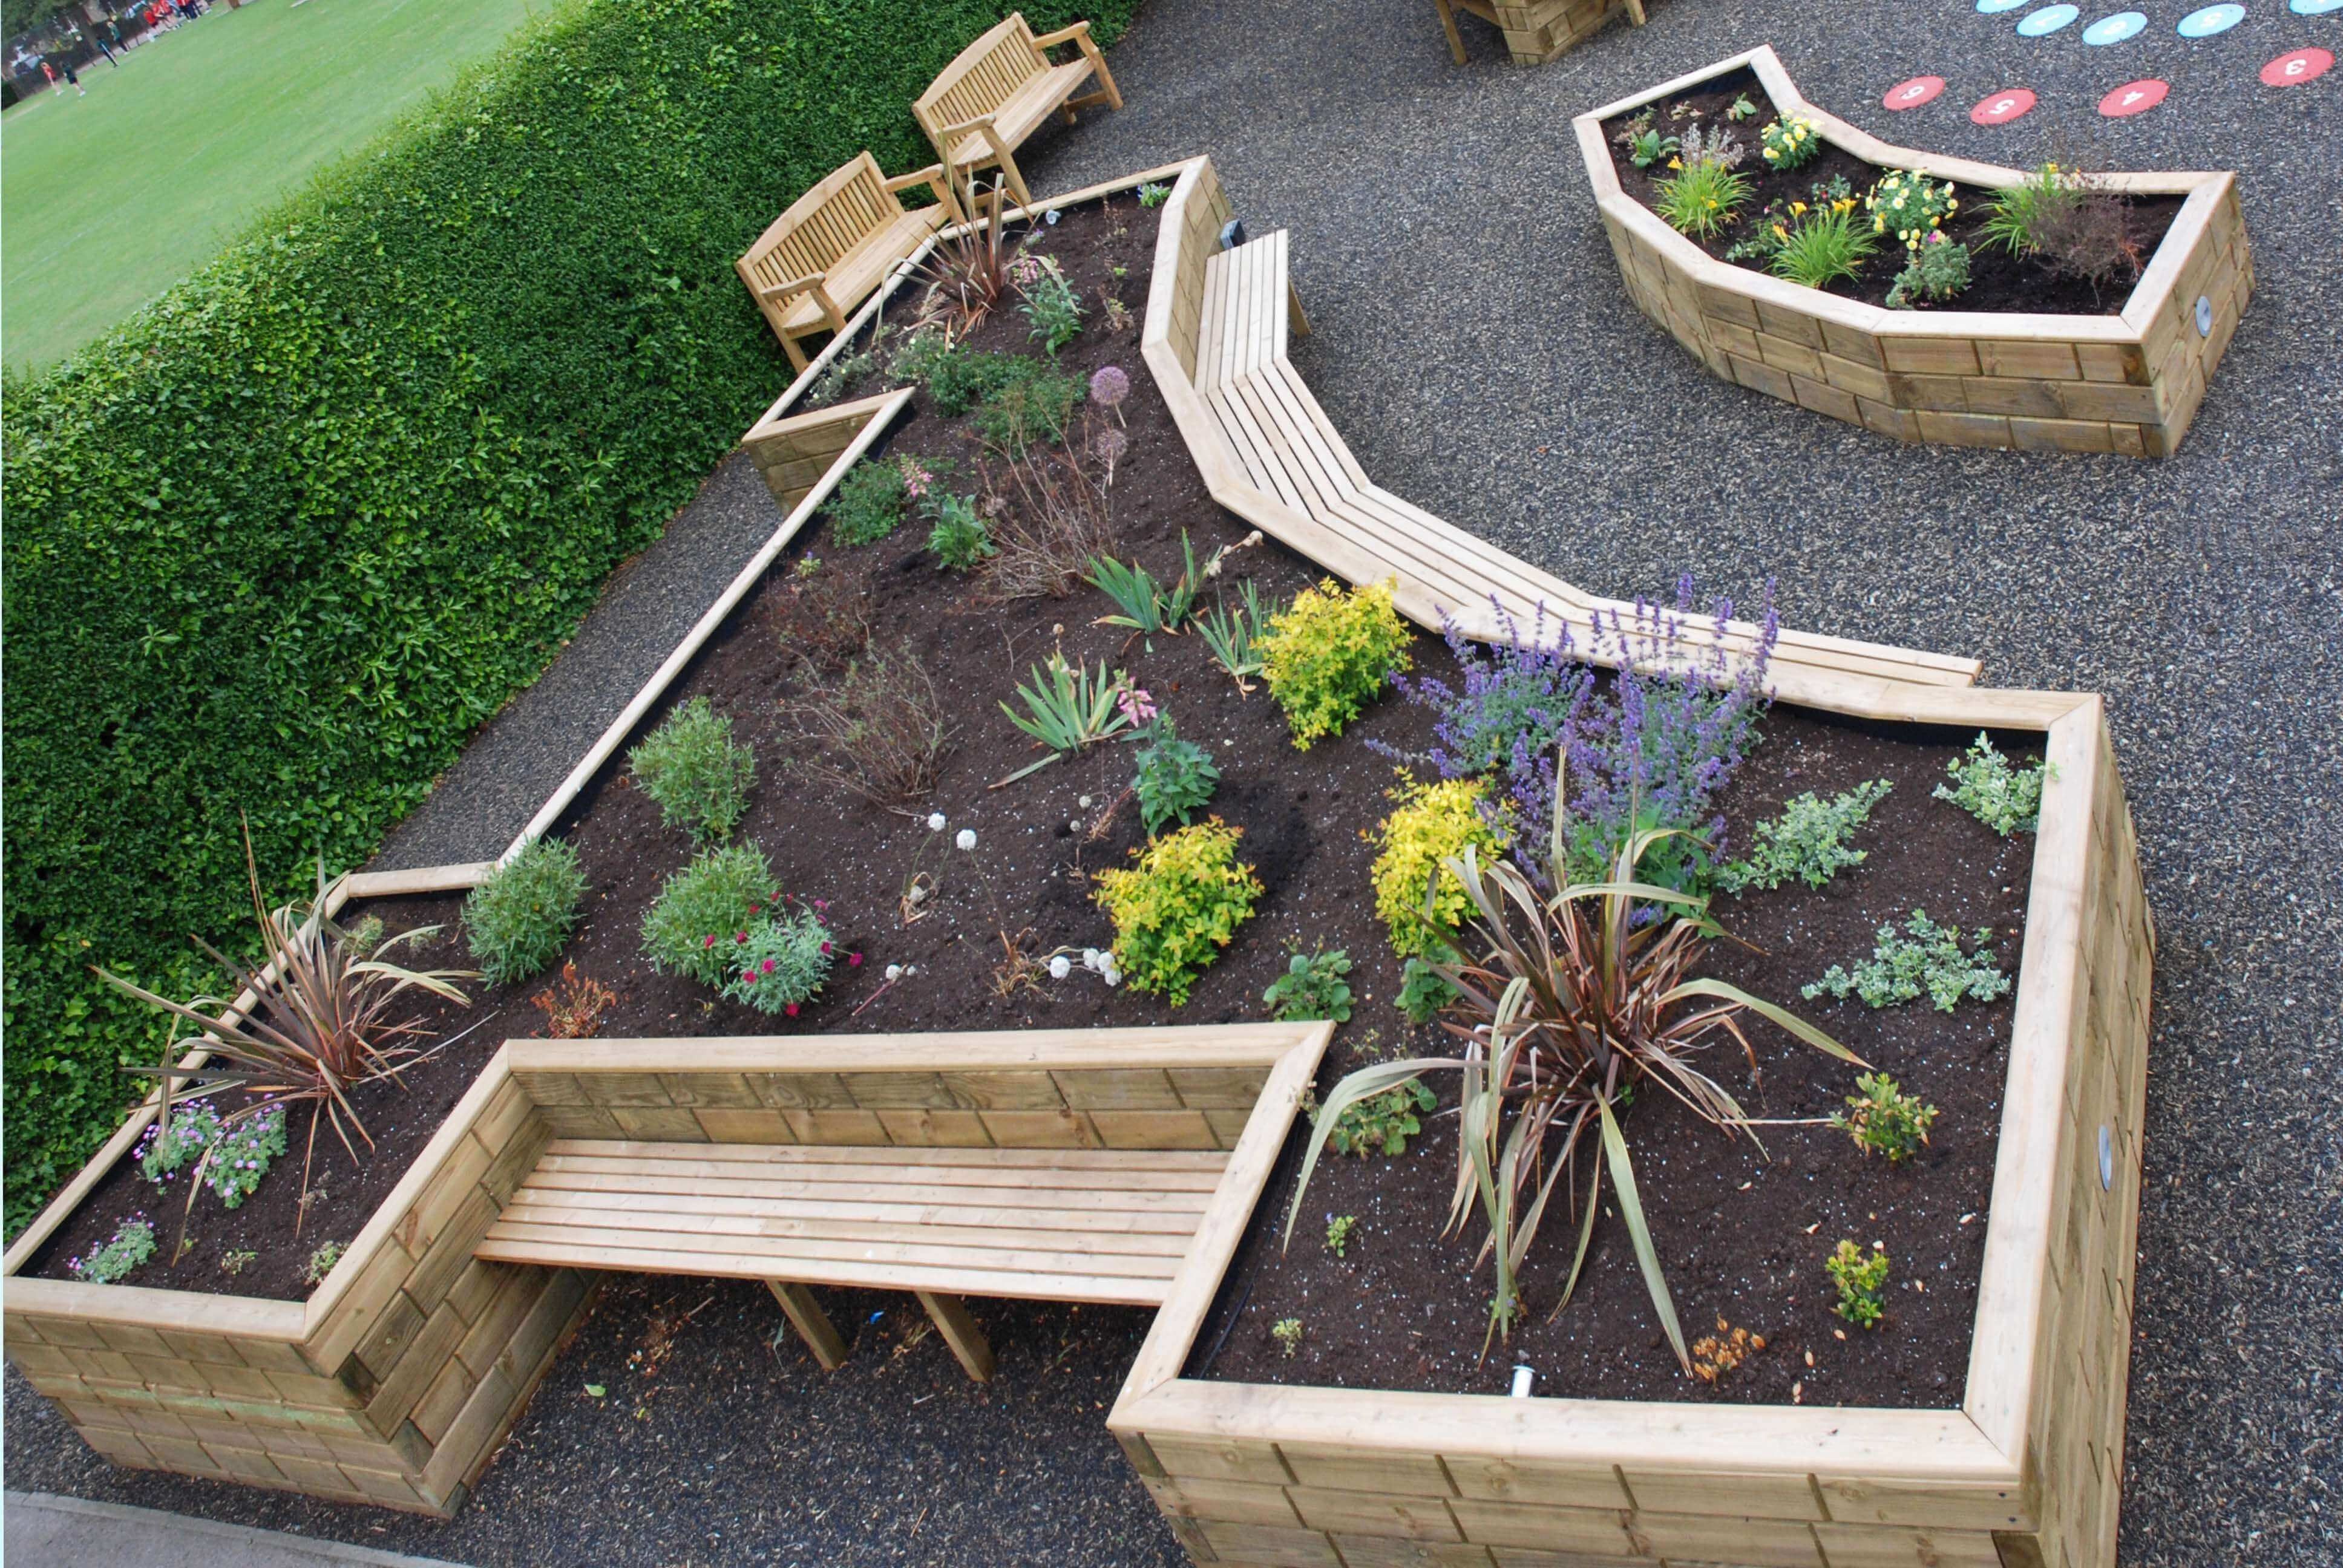 Jakwall timber raised beds